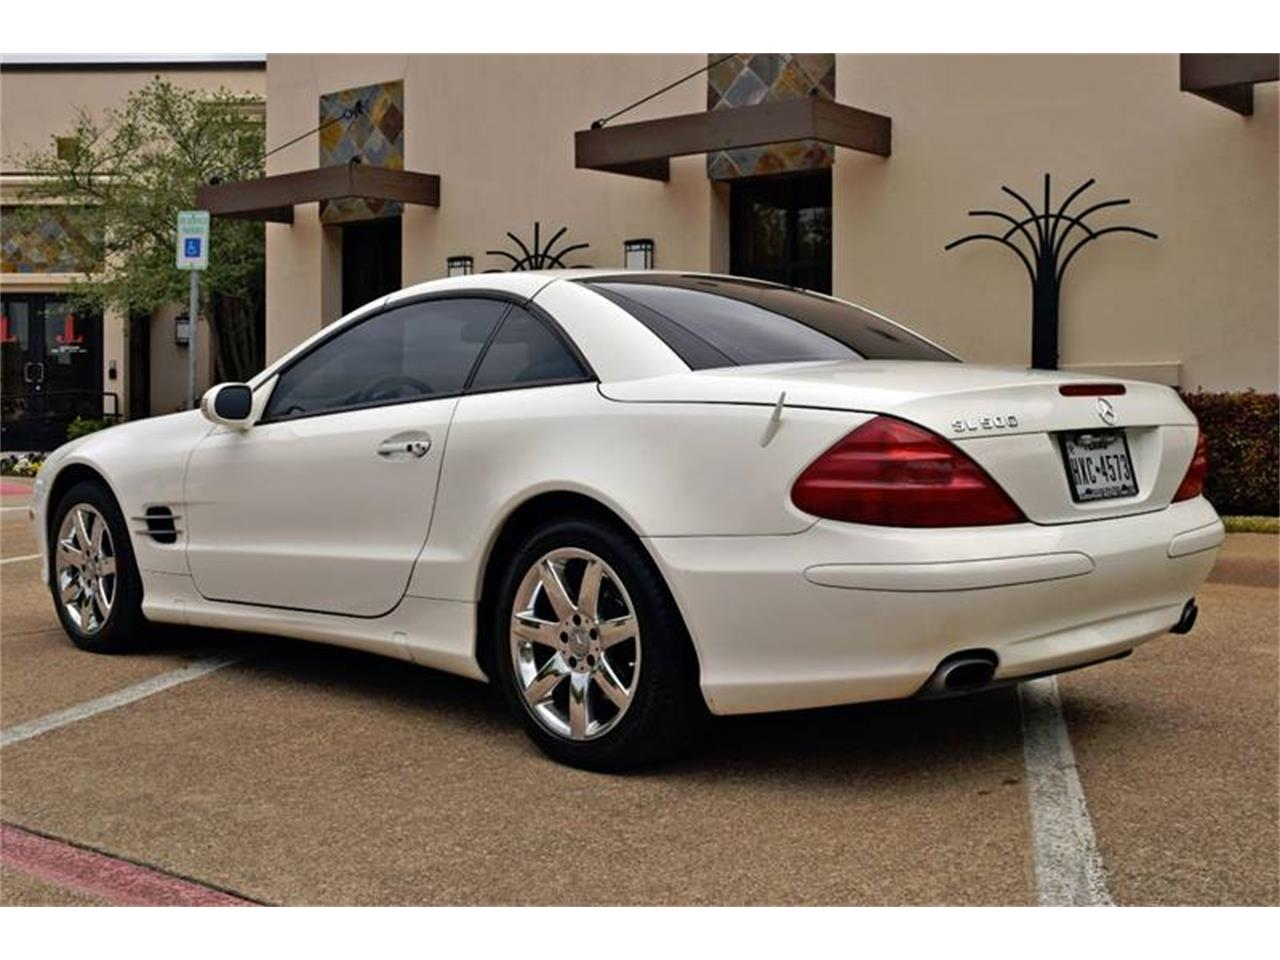 Large Picture of 2003 Mercedes-Benz SL-Class - $13,900.00 Offered by European Motor Cars LTD - PSCW